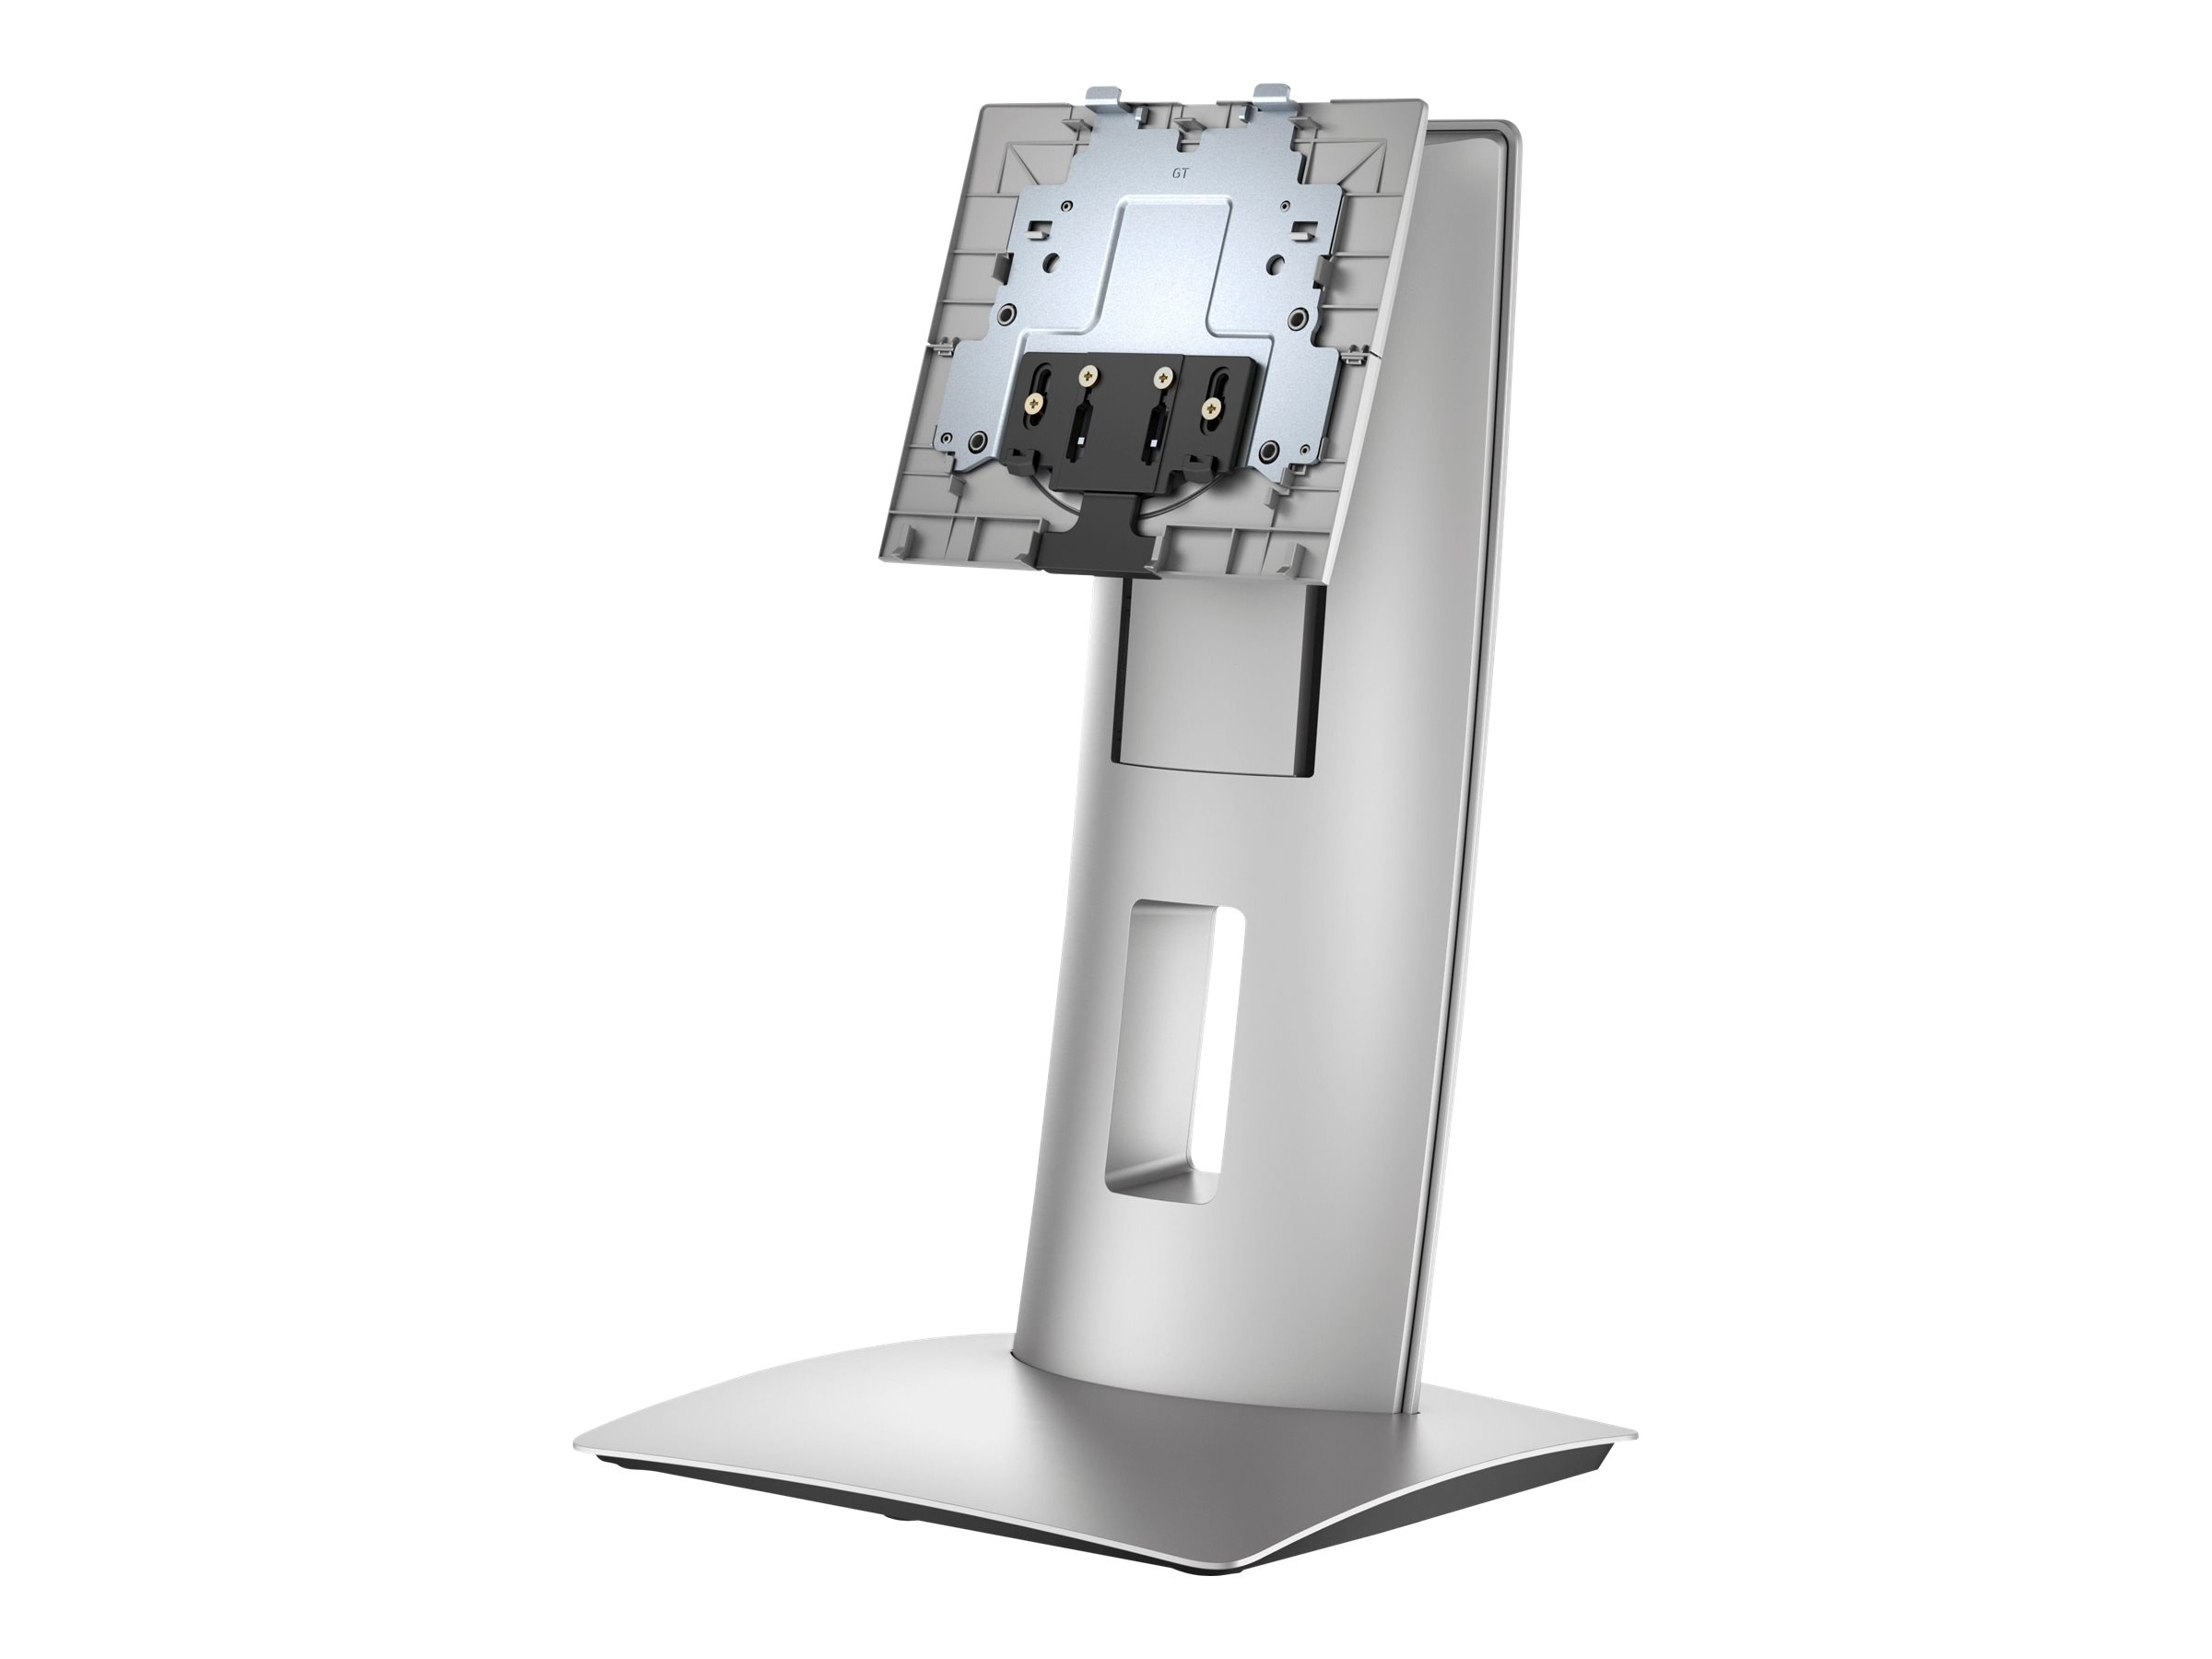 HP Height Adjustable Stand - stand kit